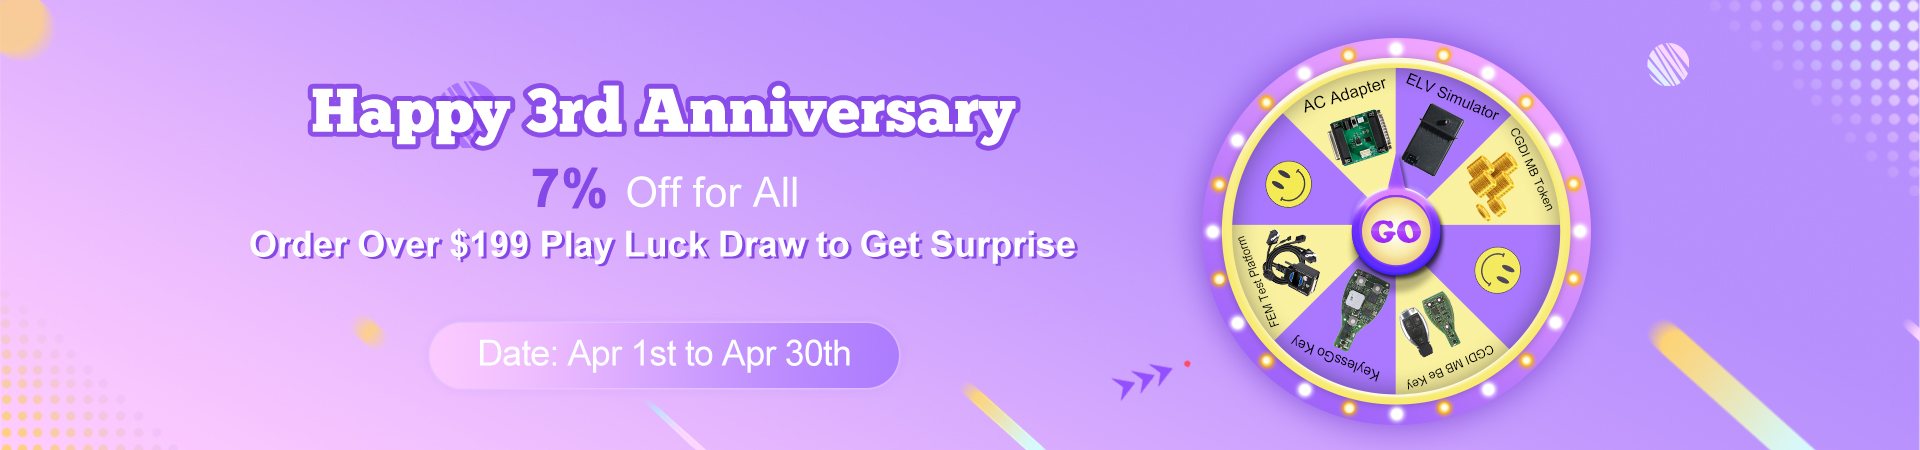 3rd Anniversary, 7% Off Plus Lucky Draw